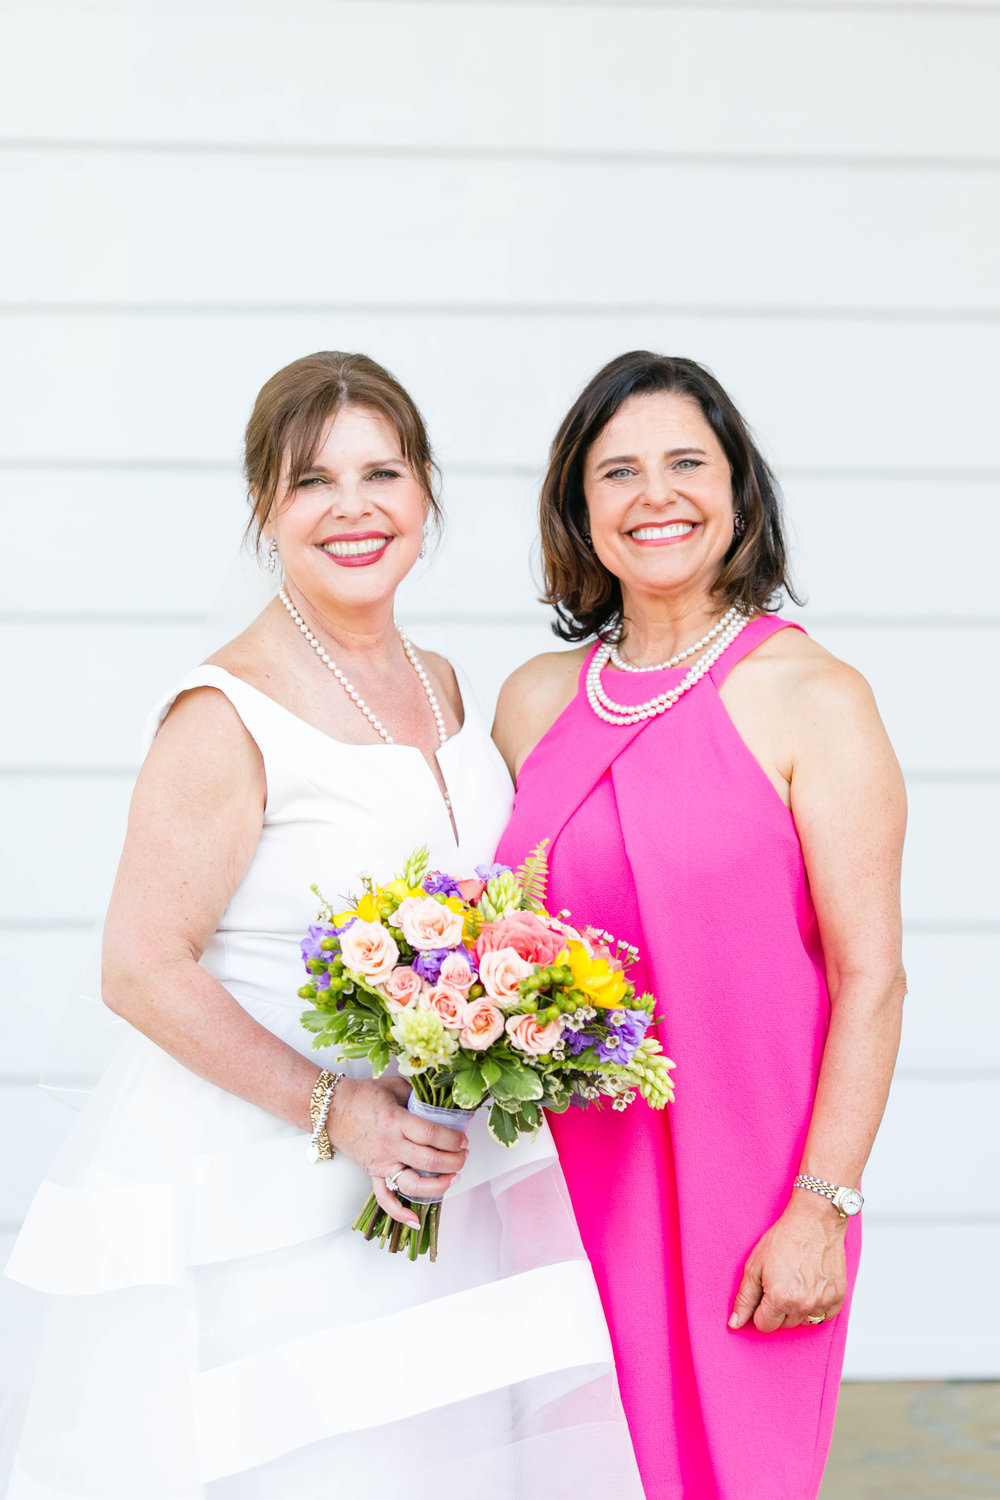 Johnson City Country Club wedding, East Tennessee wedding venue, Tri Cities TN wedding photographer, bridesmaids portraits